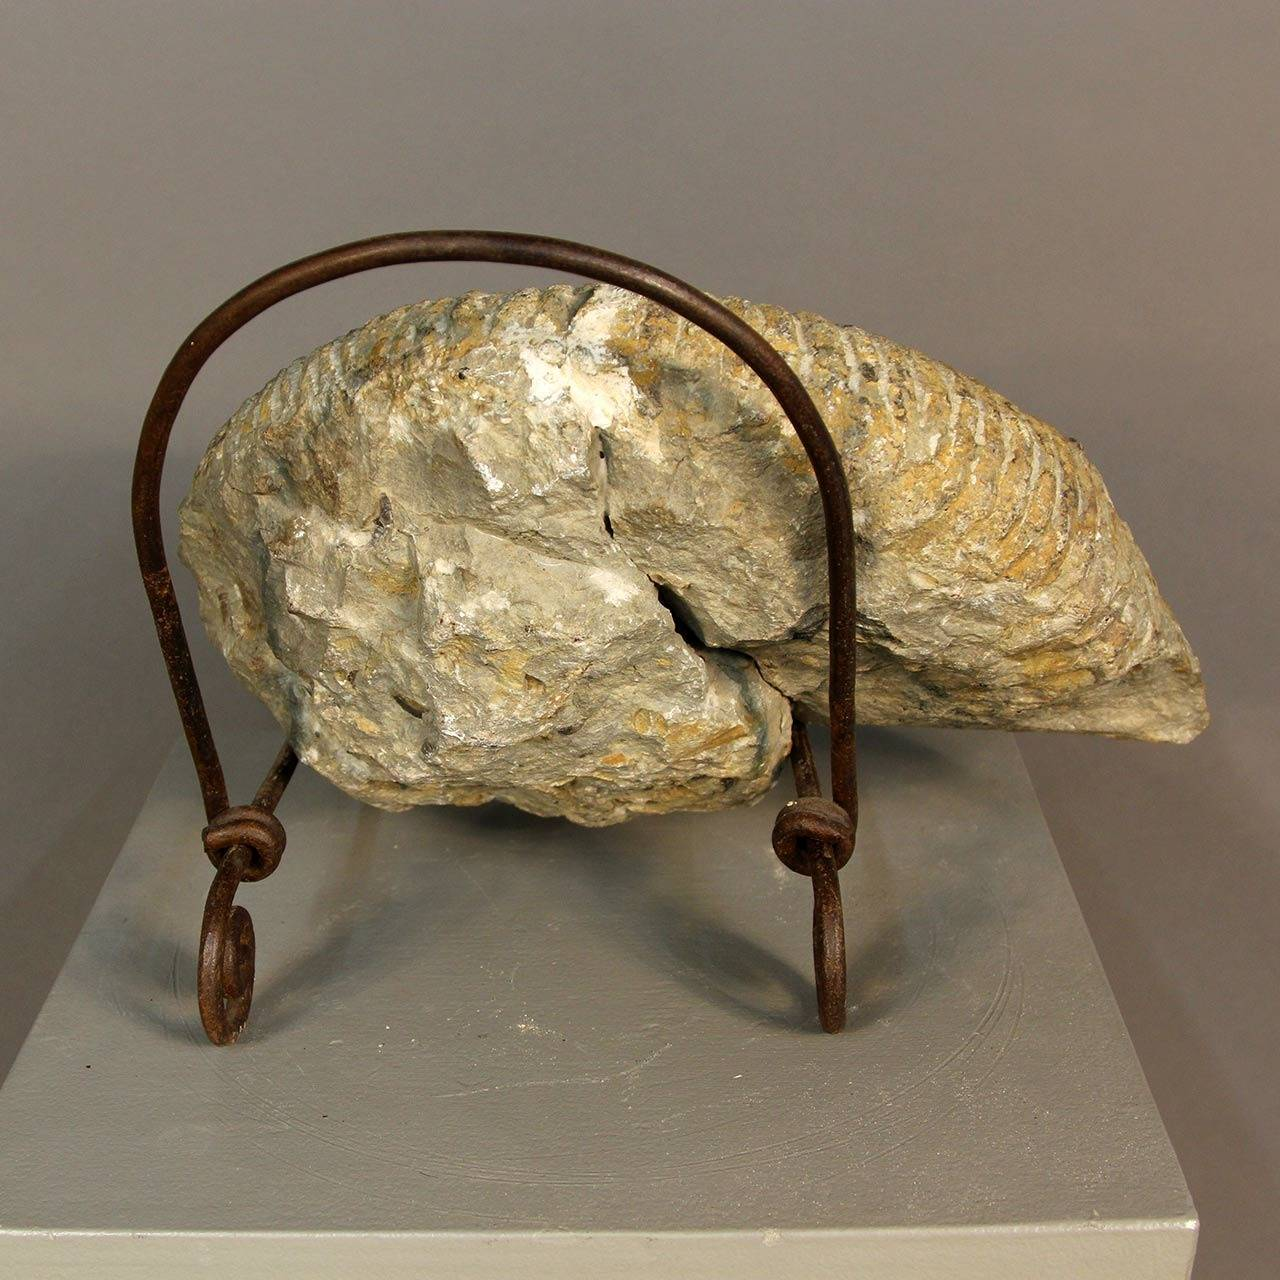 Beautiful fossilized ammonite specimen. Gorgeous detail, very nice piece. Has repaired crack as seen in images. Sits on iron stand.